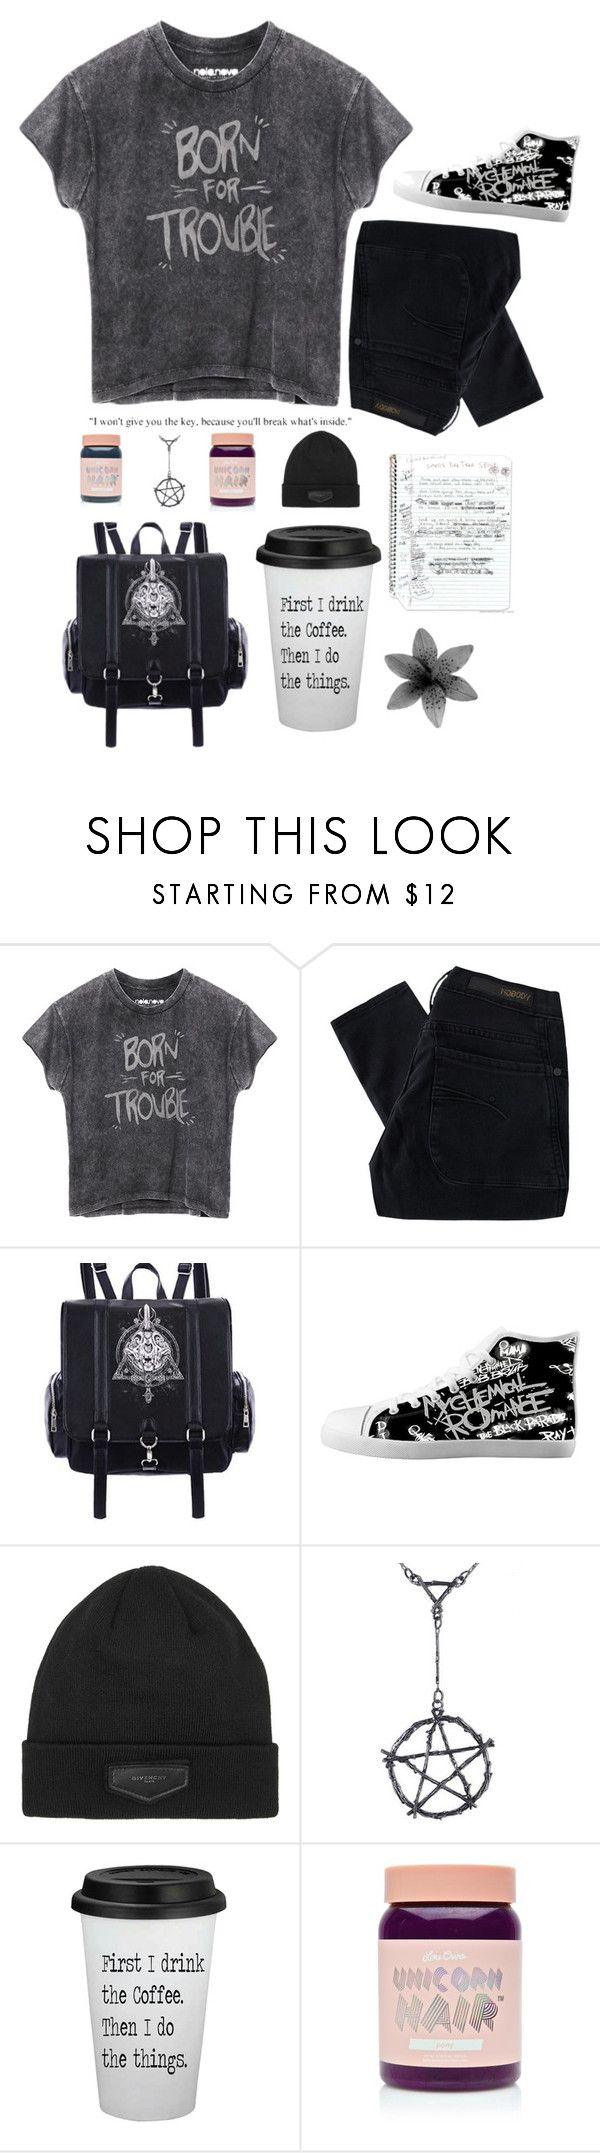 """""""// I knew you were trouble \\"""" by addicted-to-a-memory ❤ liked on Polyvore featuring Nobody Denim, Givenchy and Lime Crime"""